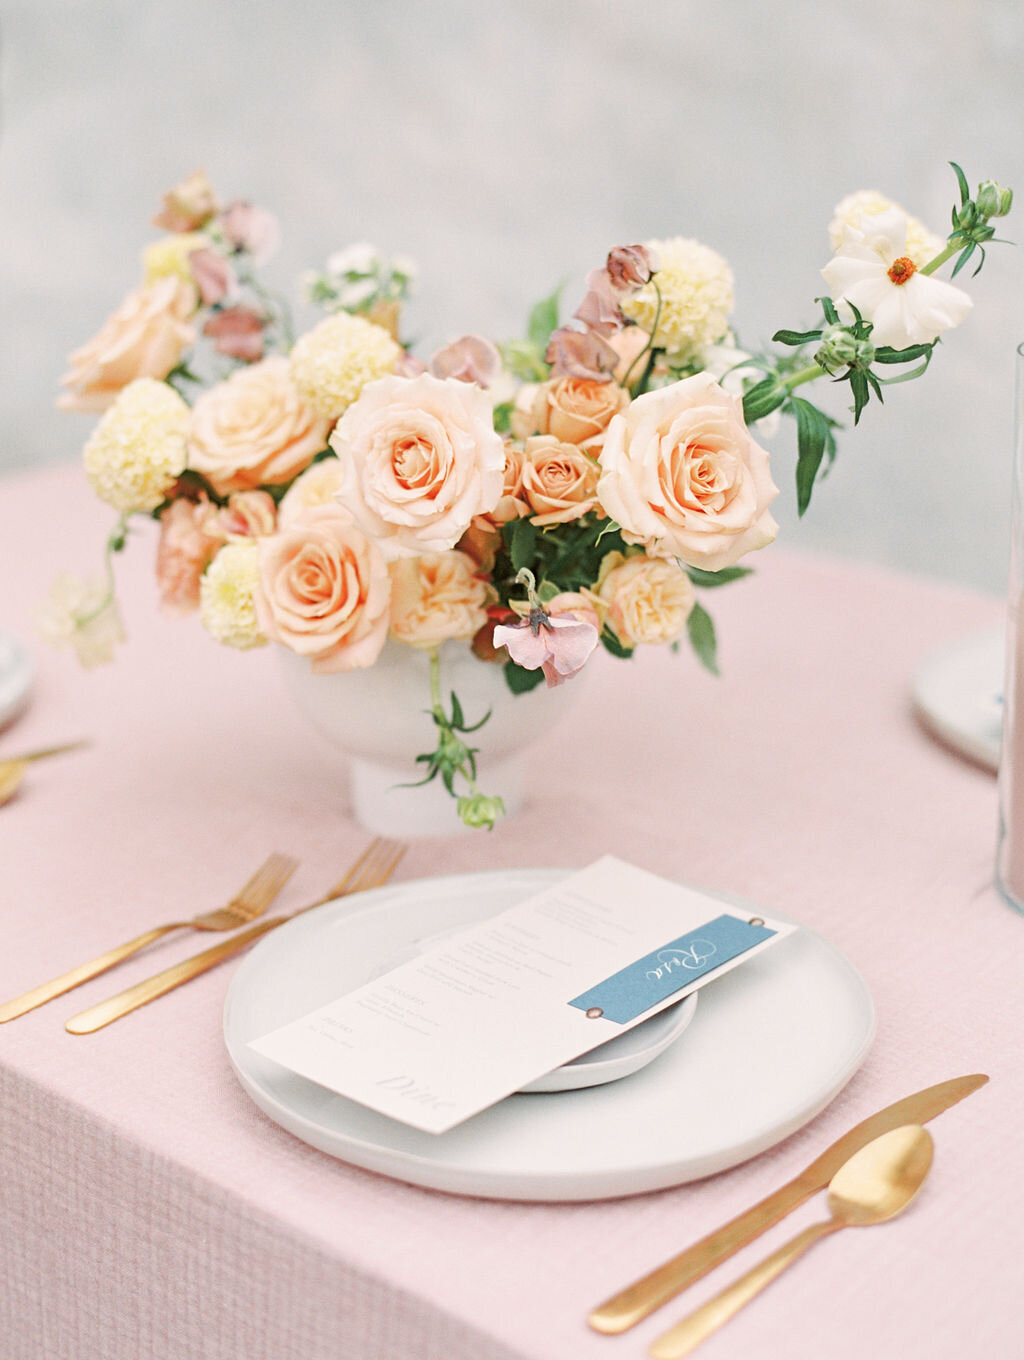 Embark-Event-Design-and-Ashley-Rae-Studio-Wedding-Editorial-San-Luis-Obispo-164